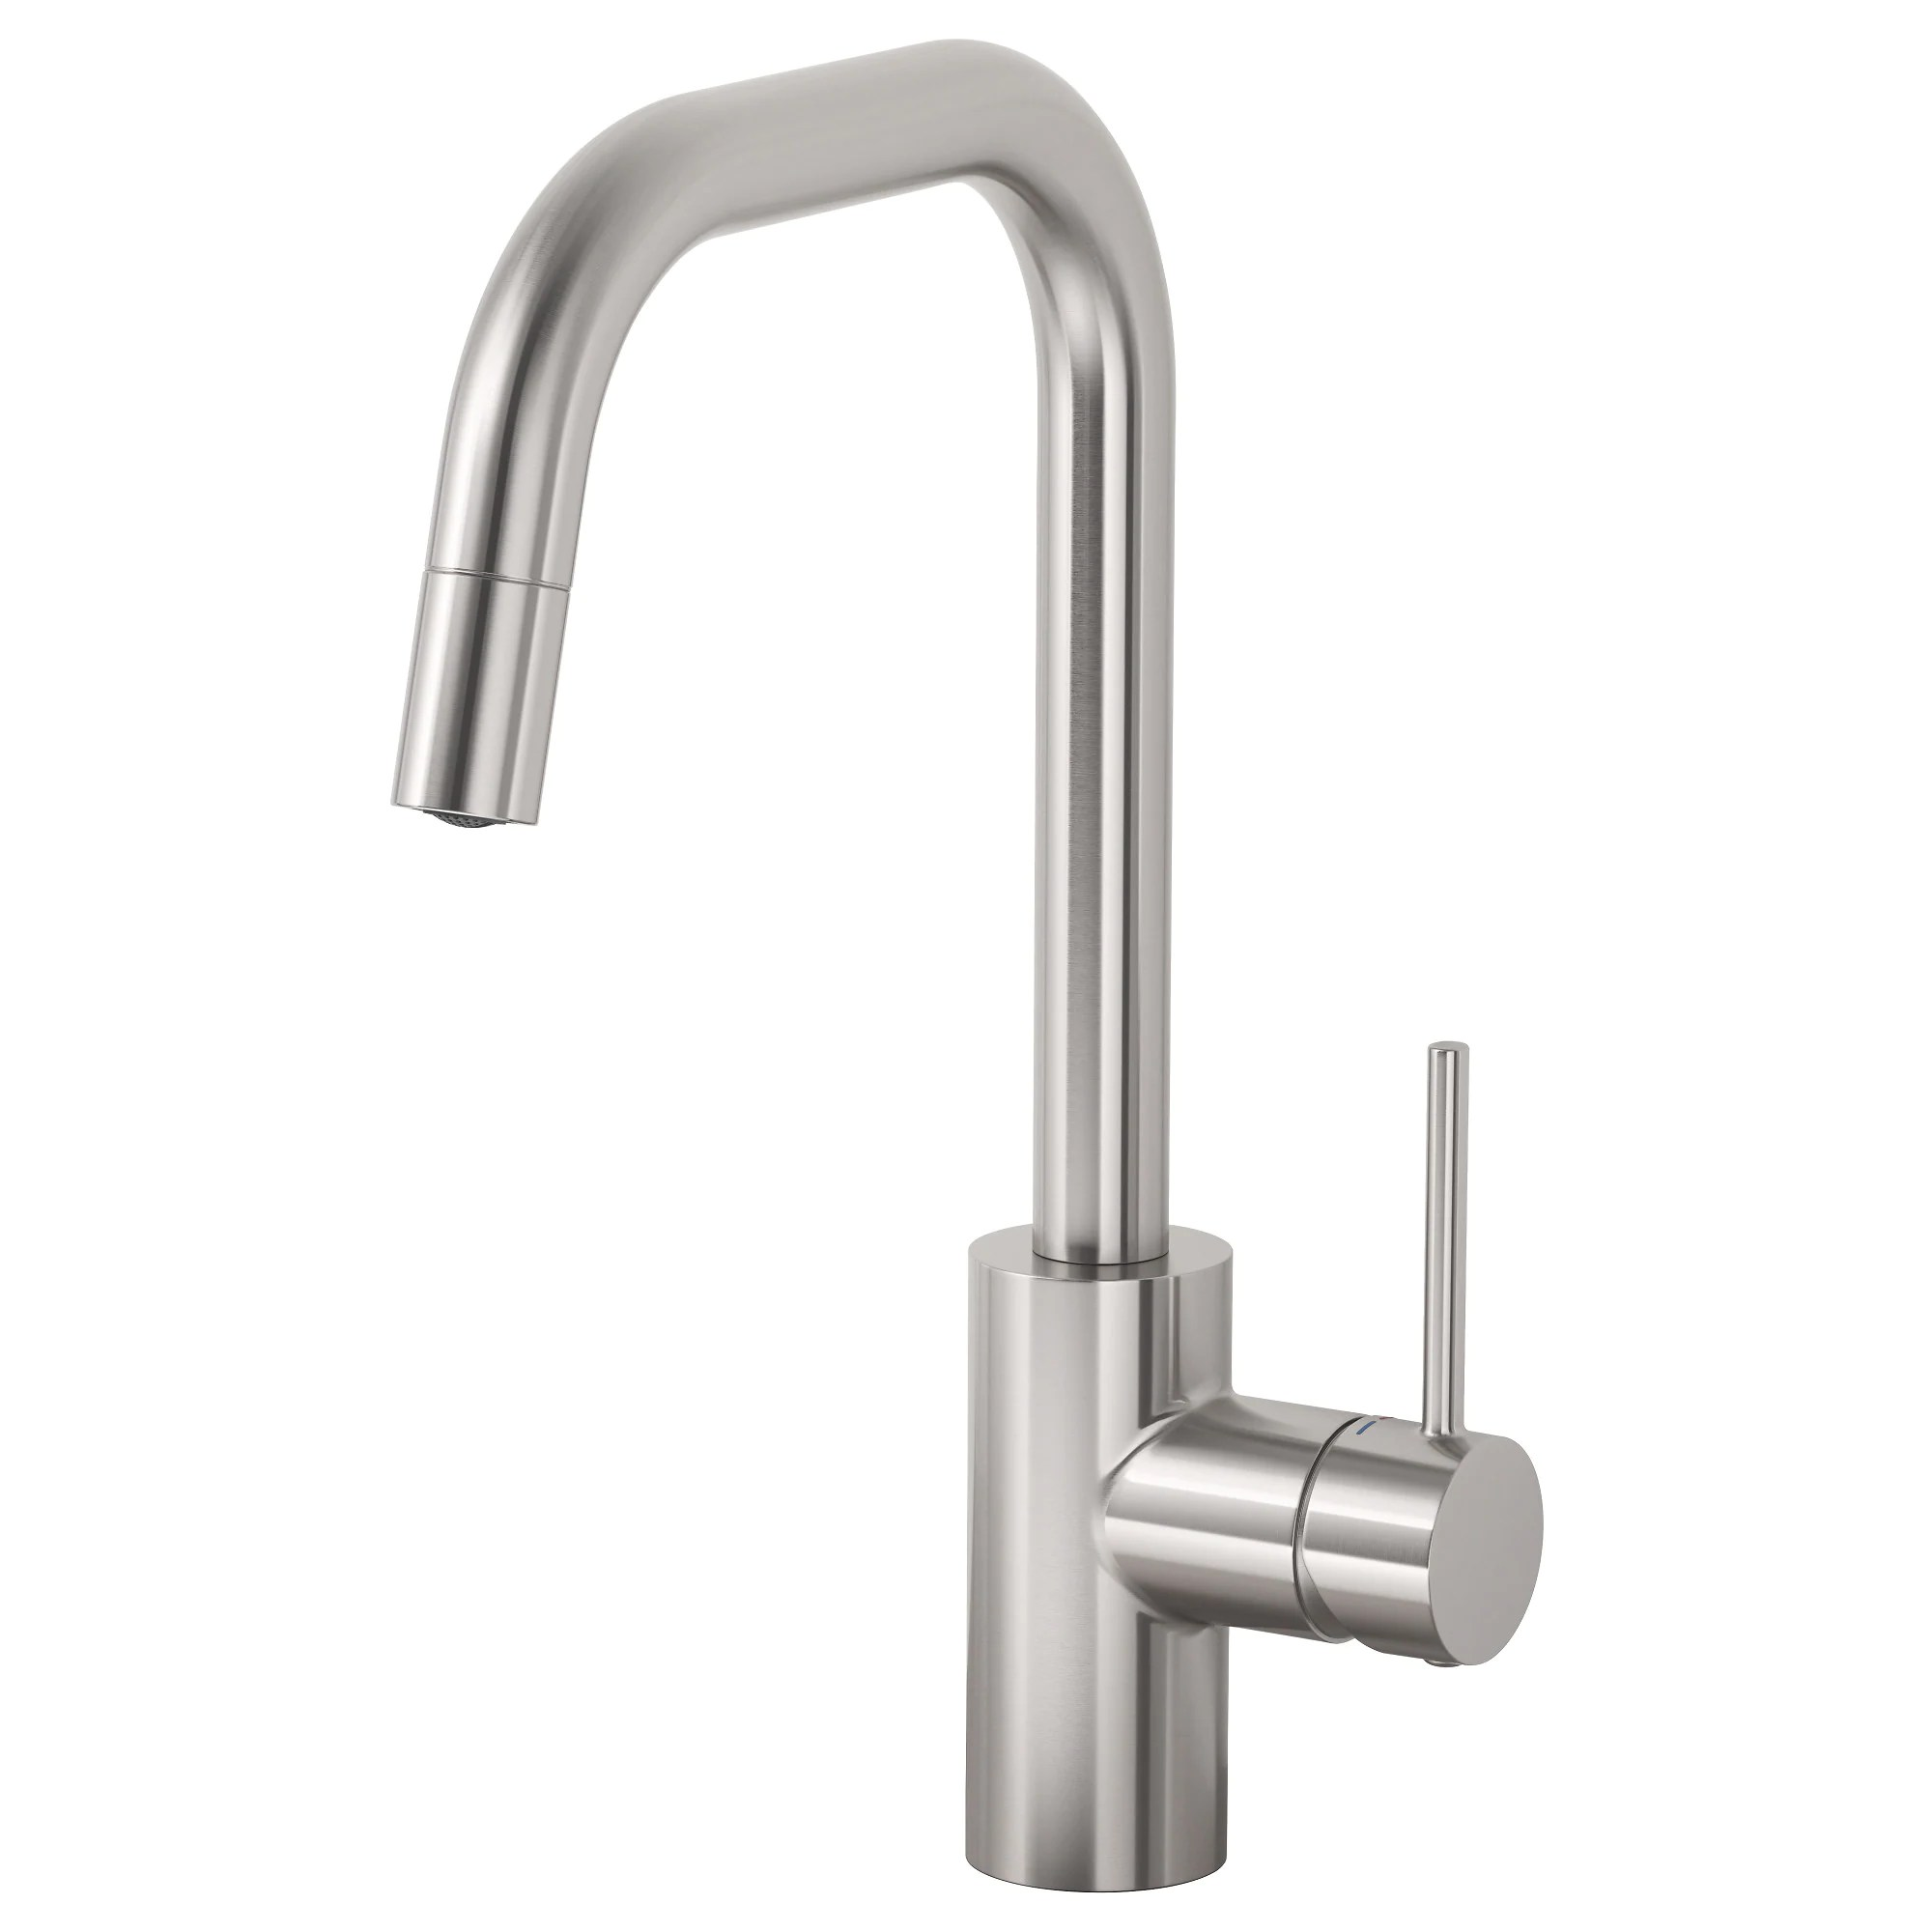 stainless kitchen faucet renovation on a budget almaren with pull out spout ikea this is